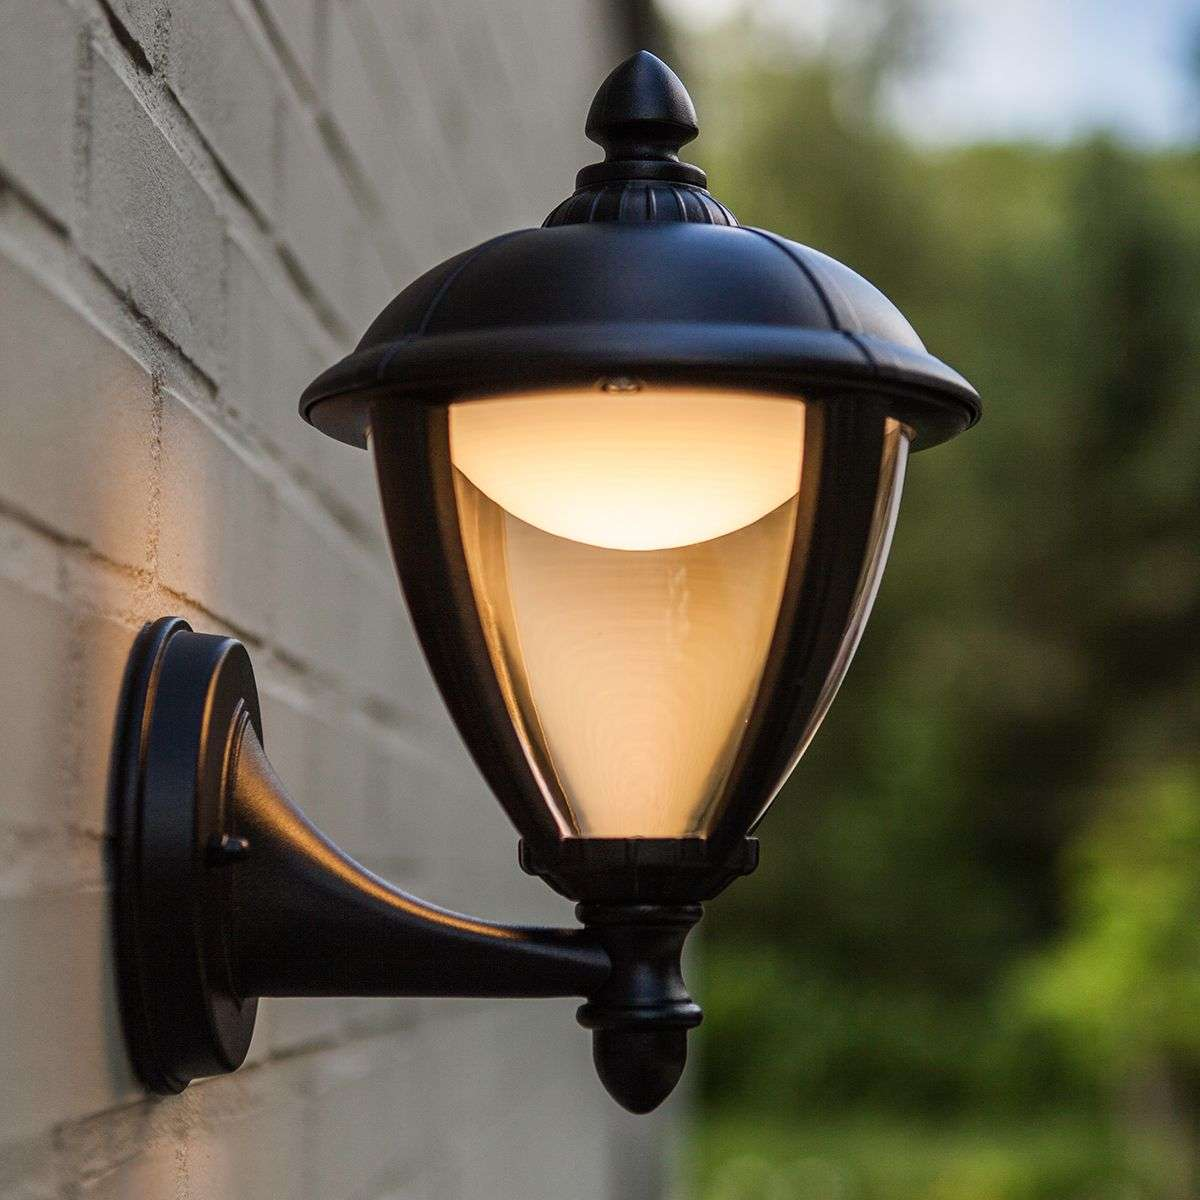 Classically-designed Unite LED exterior wall light | Lights.ie